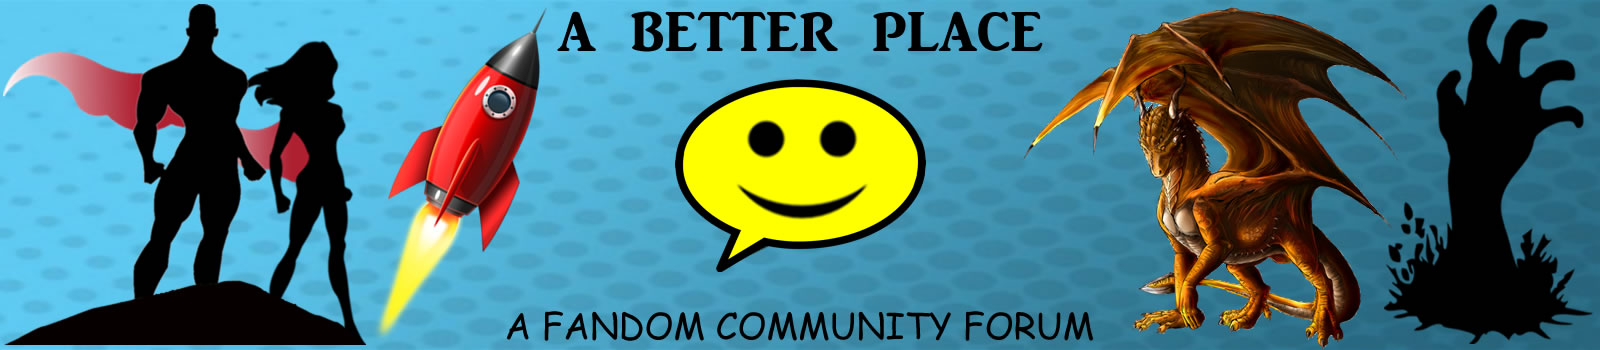 A Better Place - A Fandom Community Forum